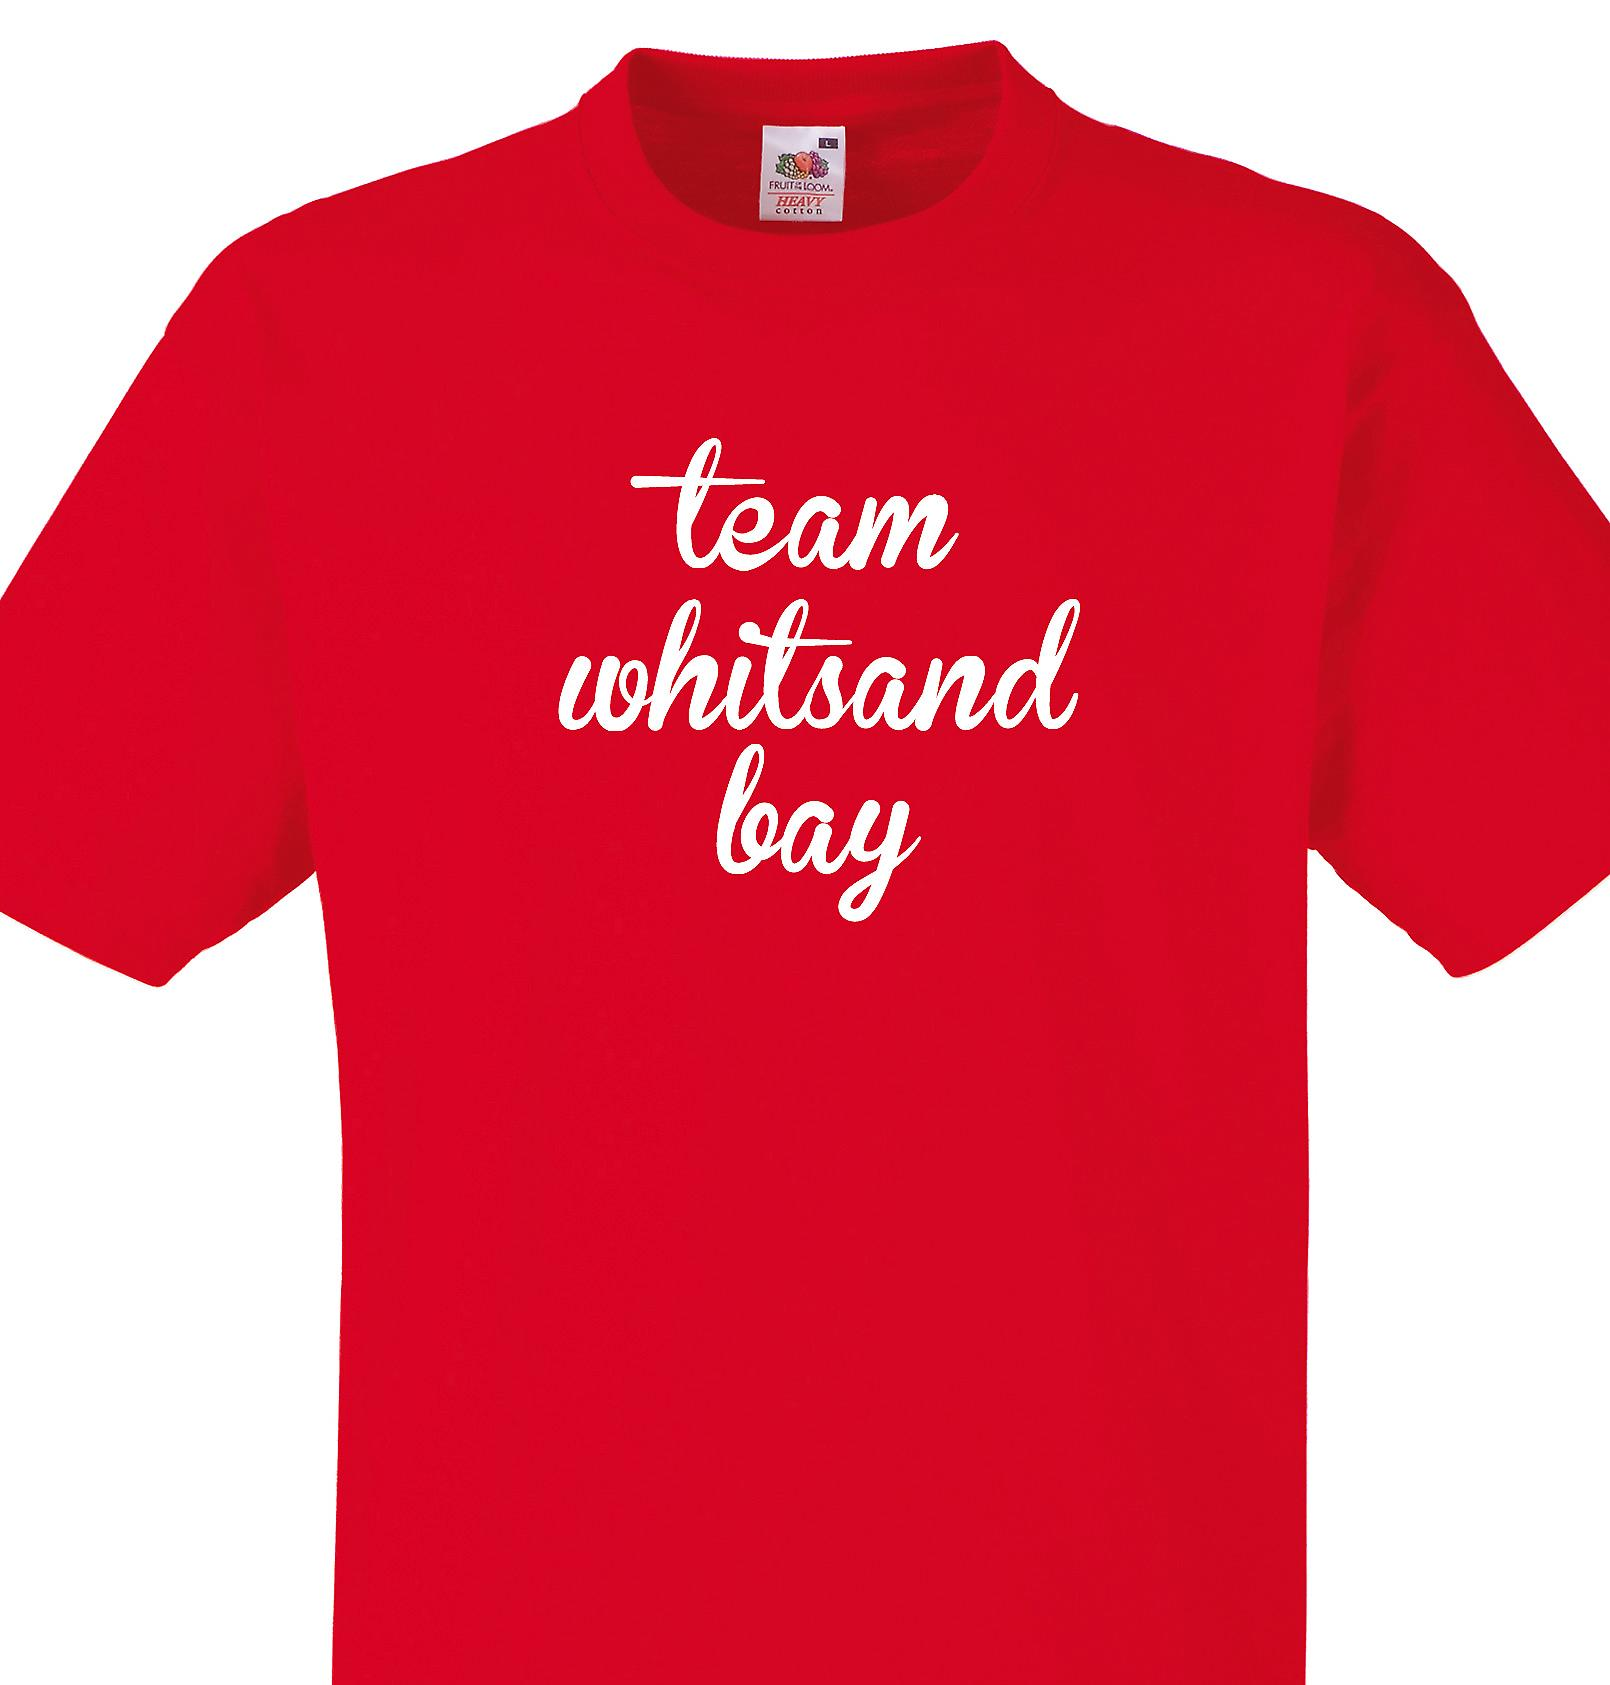 Team Whitsand bay Red T shirt